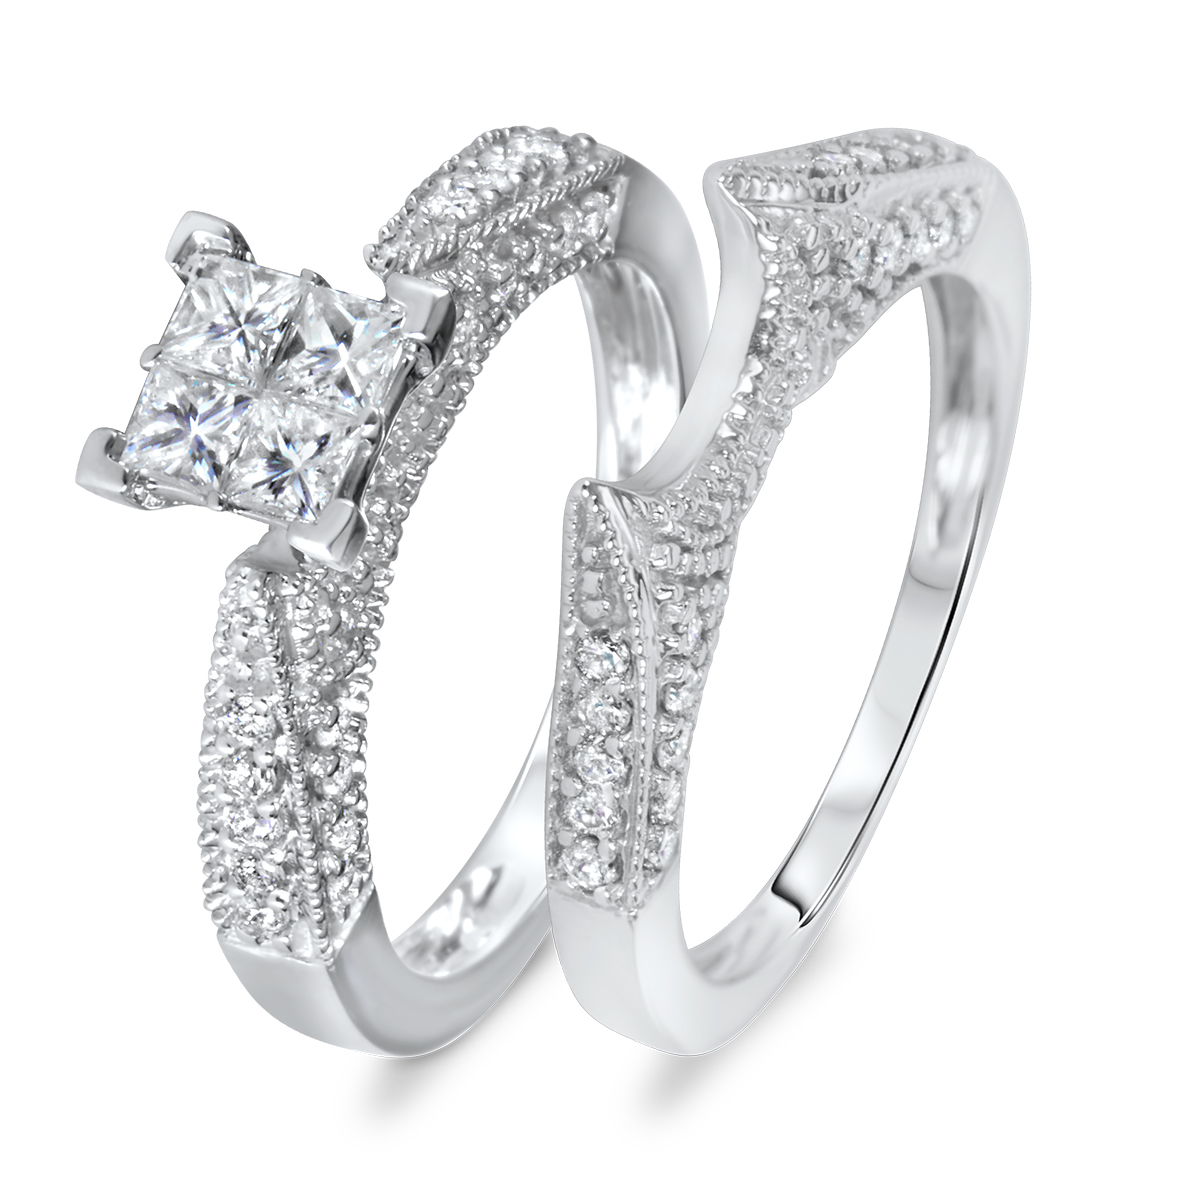 customizable engagement rings, customizable bridal ring sets